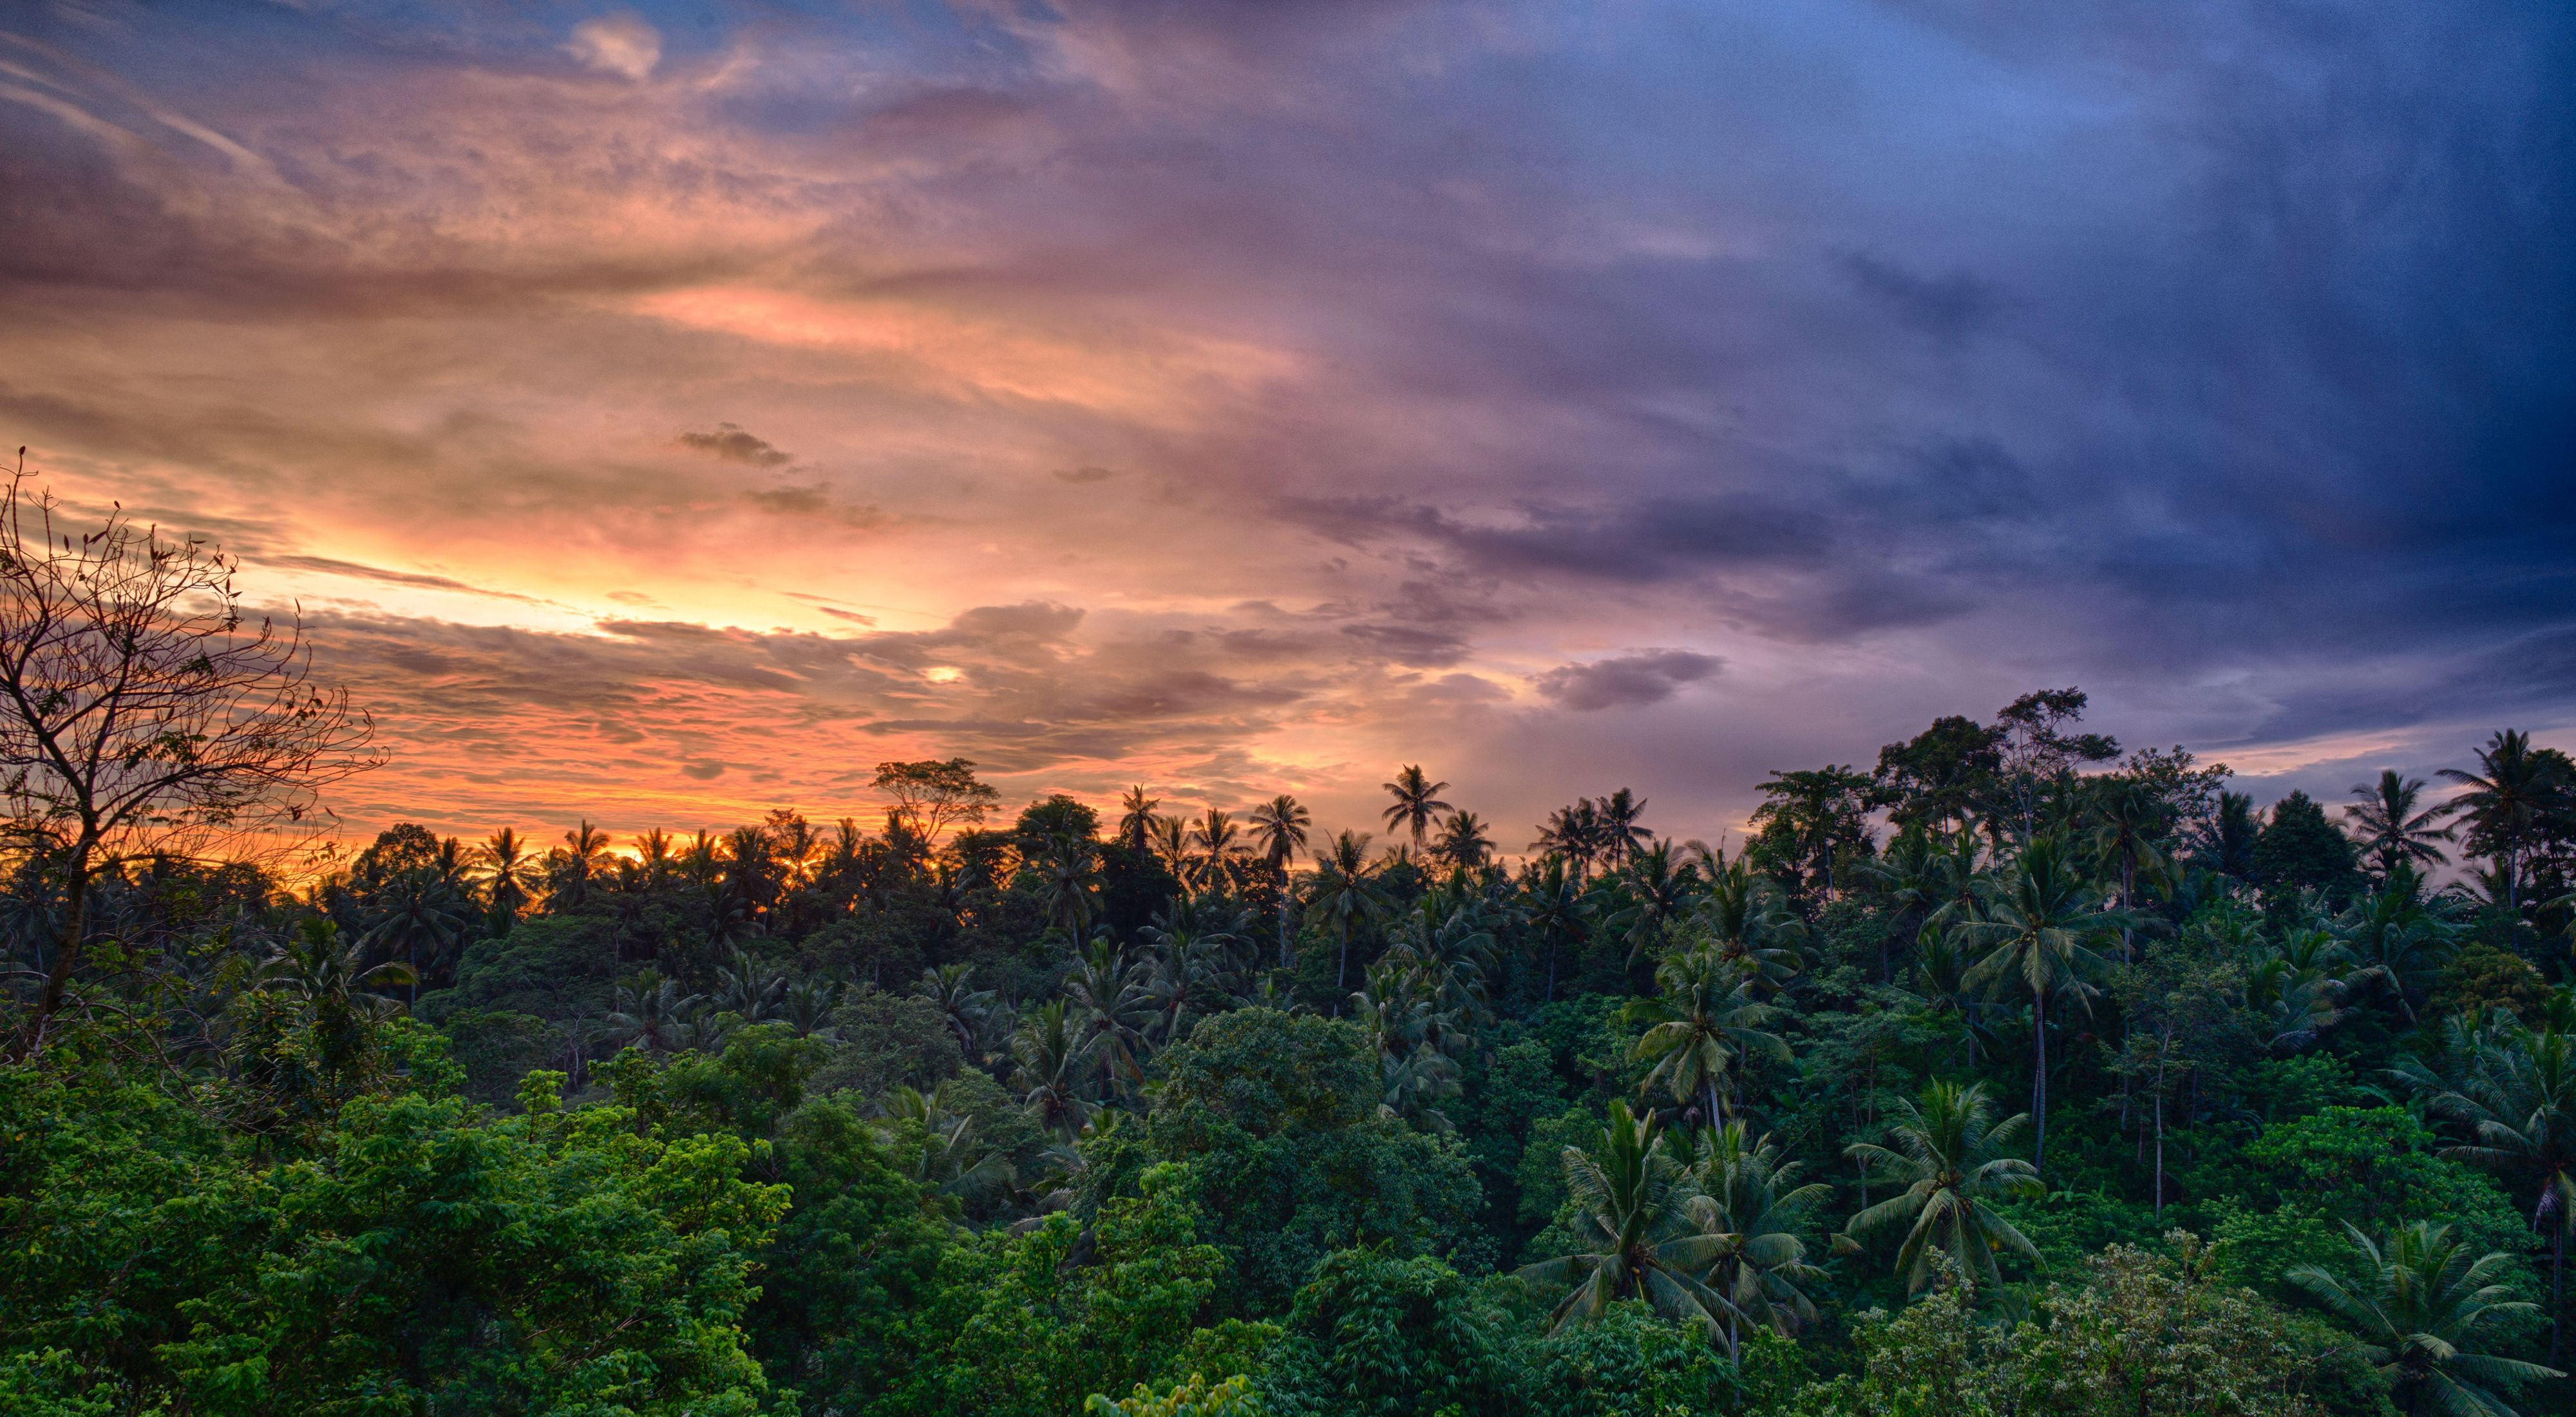 The sun sets over a tropical forest near Bali, Indonesia.